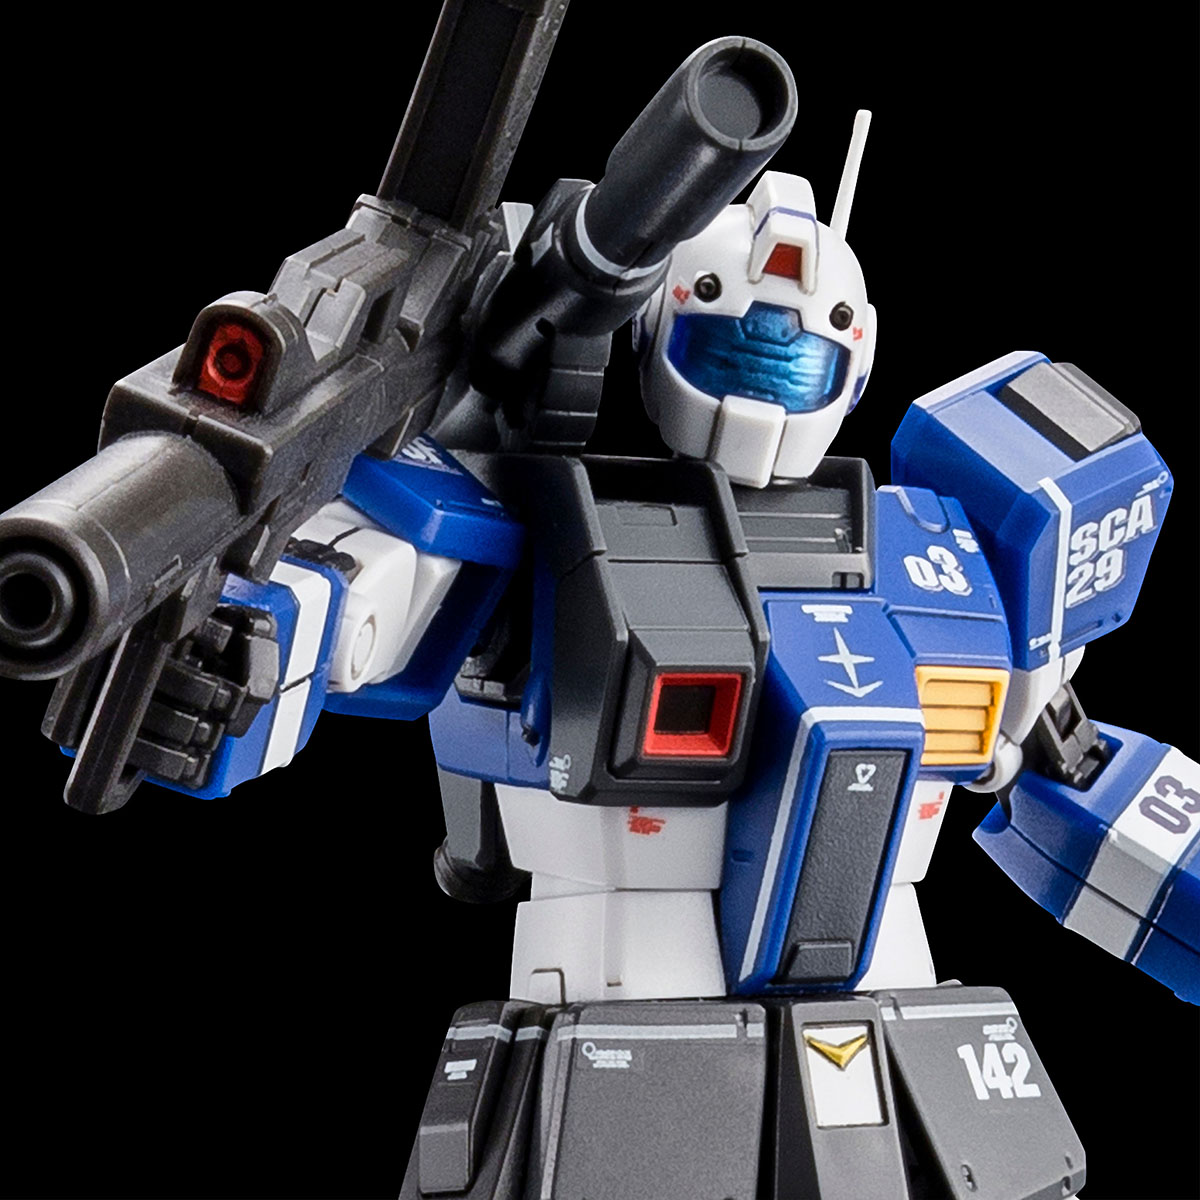 HG 1/144 GM CANNON (with ROCKET BAZOOKA) [Dec 2020 Delivery]